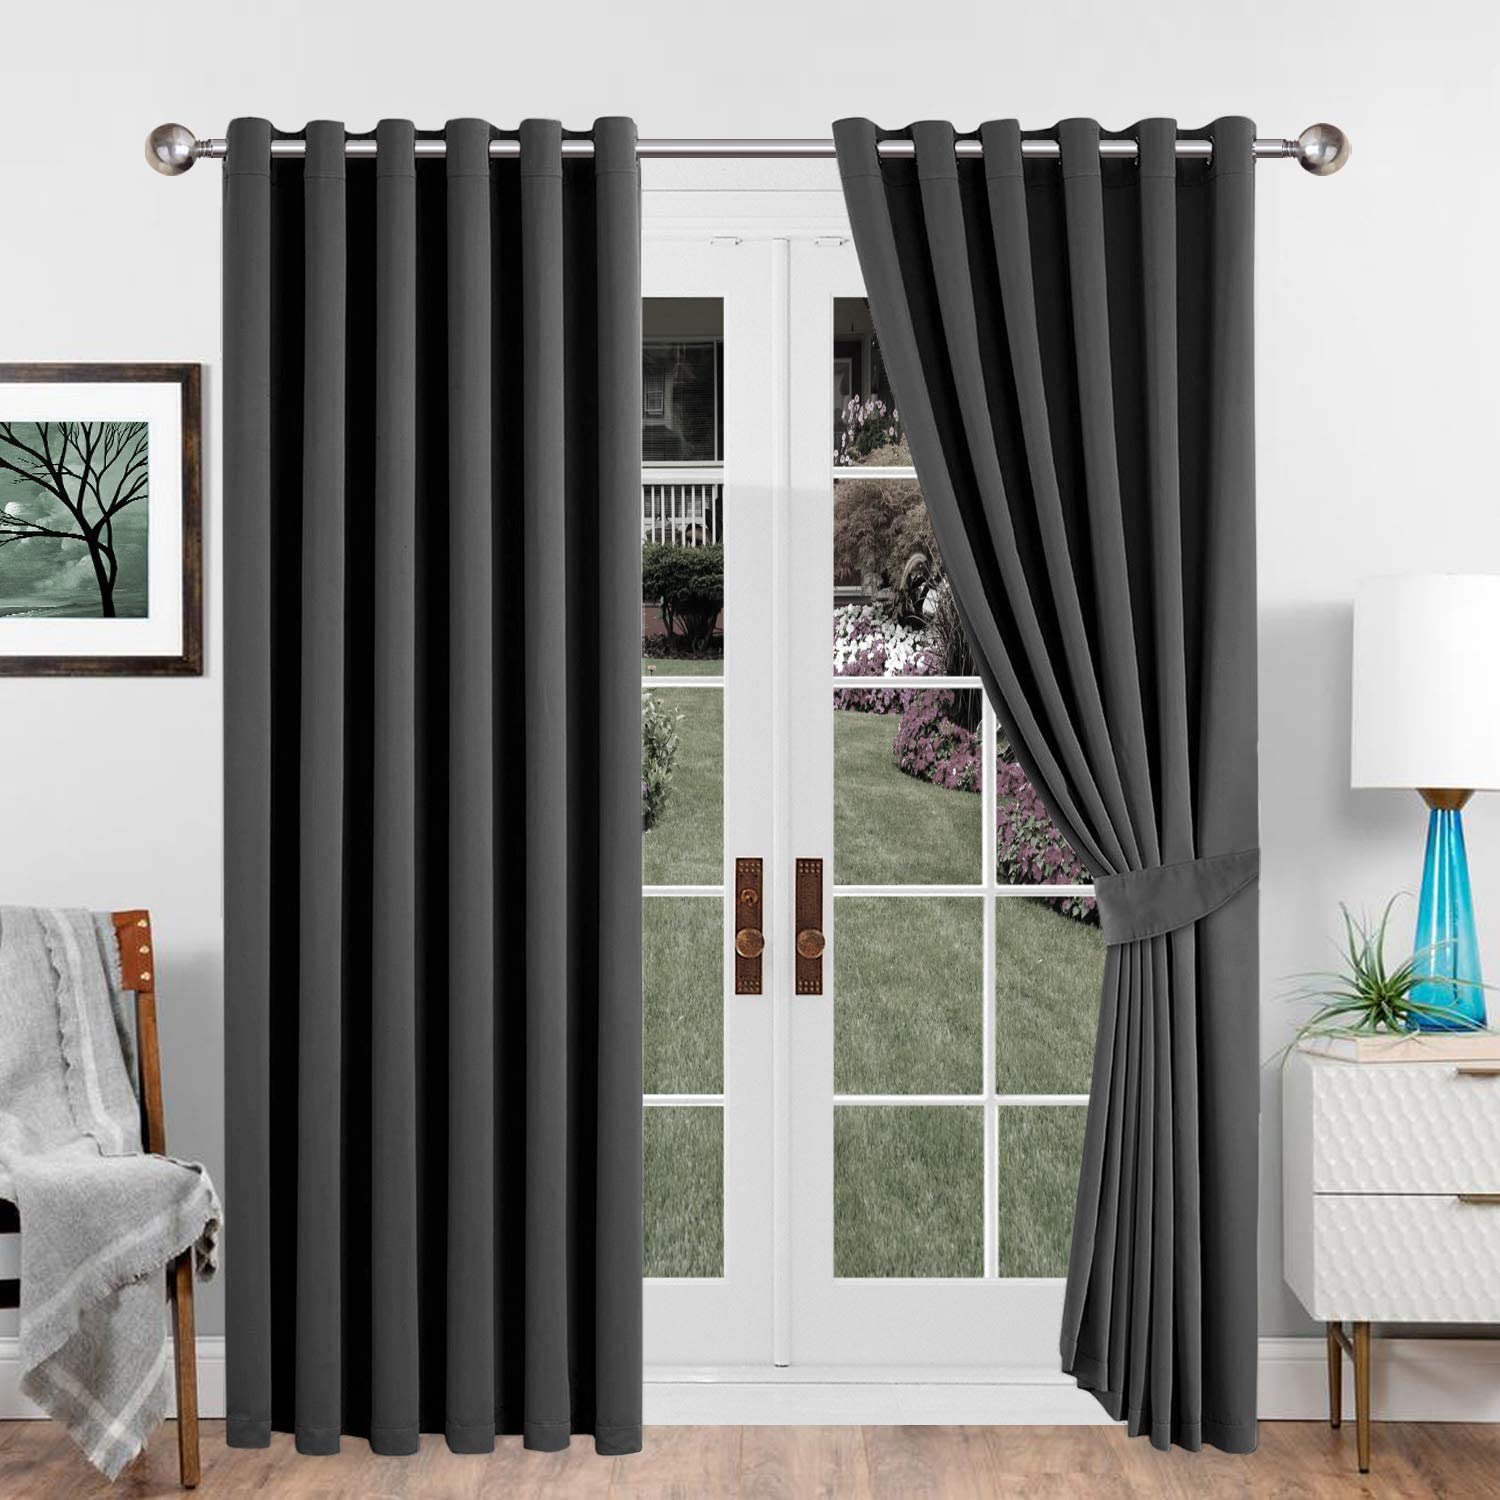 Imperial Rooms Blackout Eyelet Curtains (Grey / 90x90) Pair of thermal Readymade Ring top Curtains for Bedroom Living Rooms with Two Tie Backs 90x90 (228x228cm) Grey - Eyelet